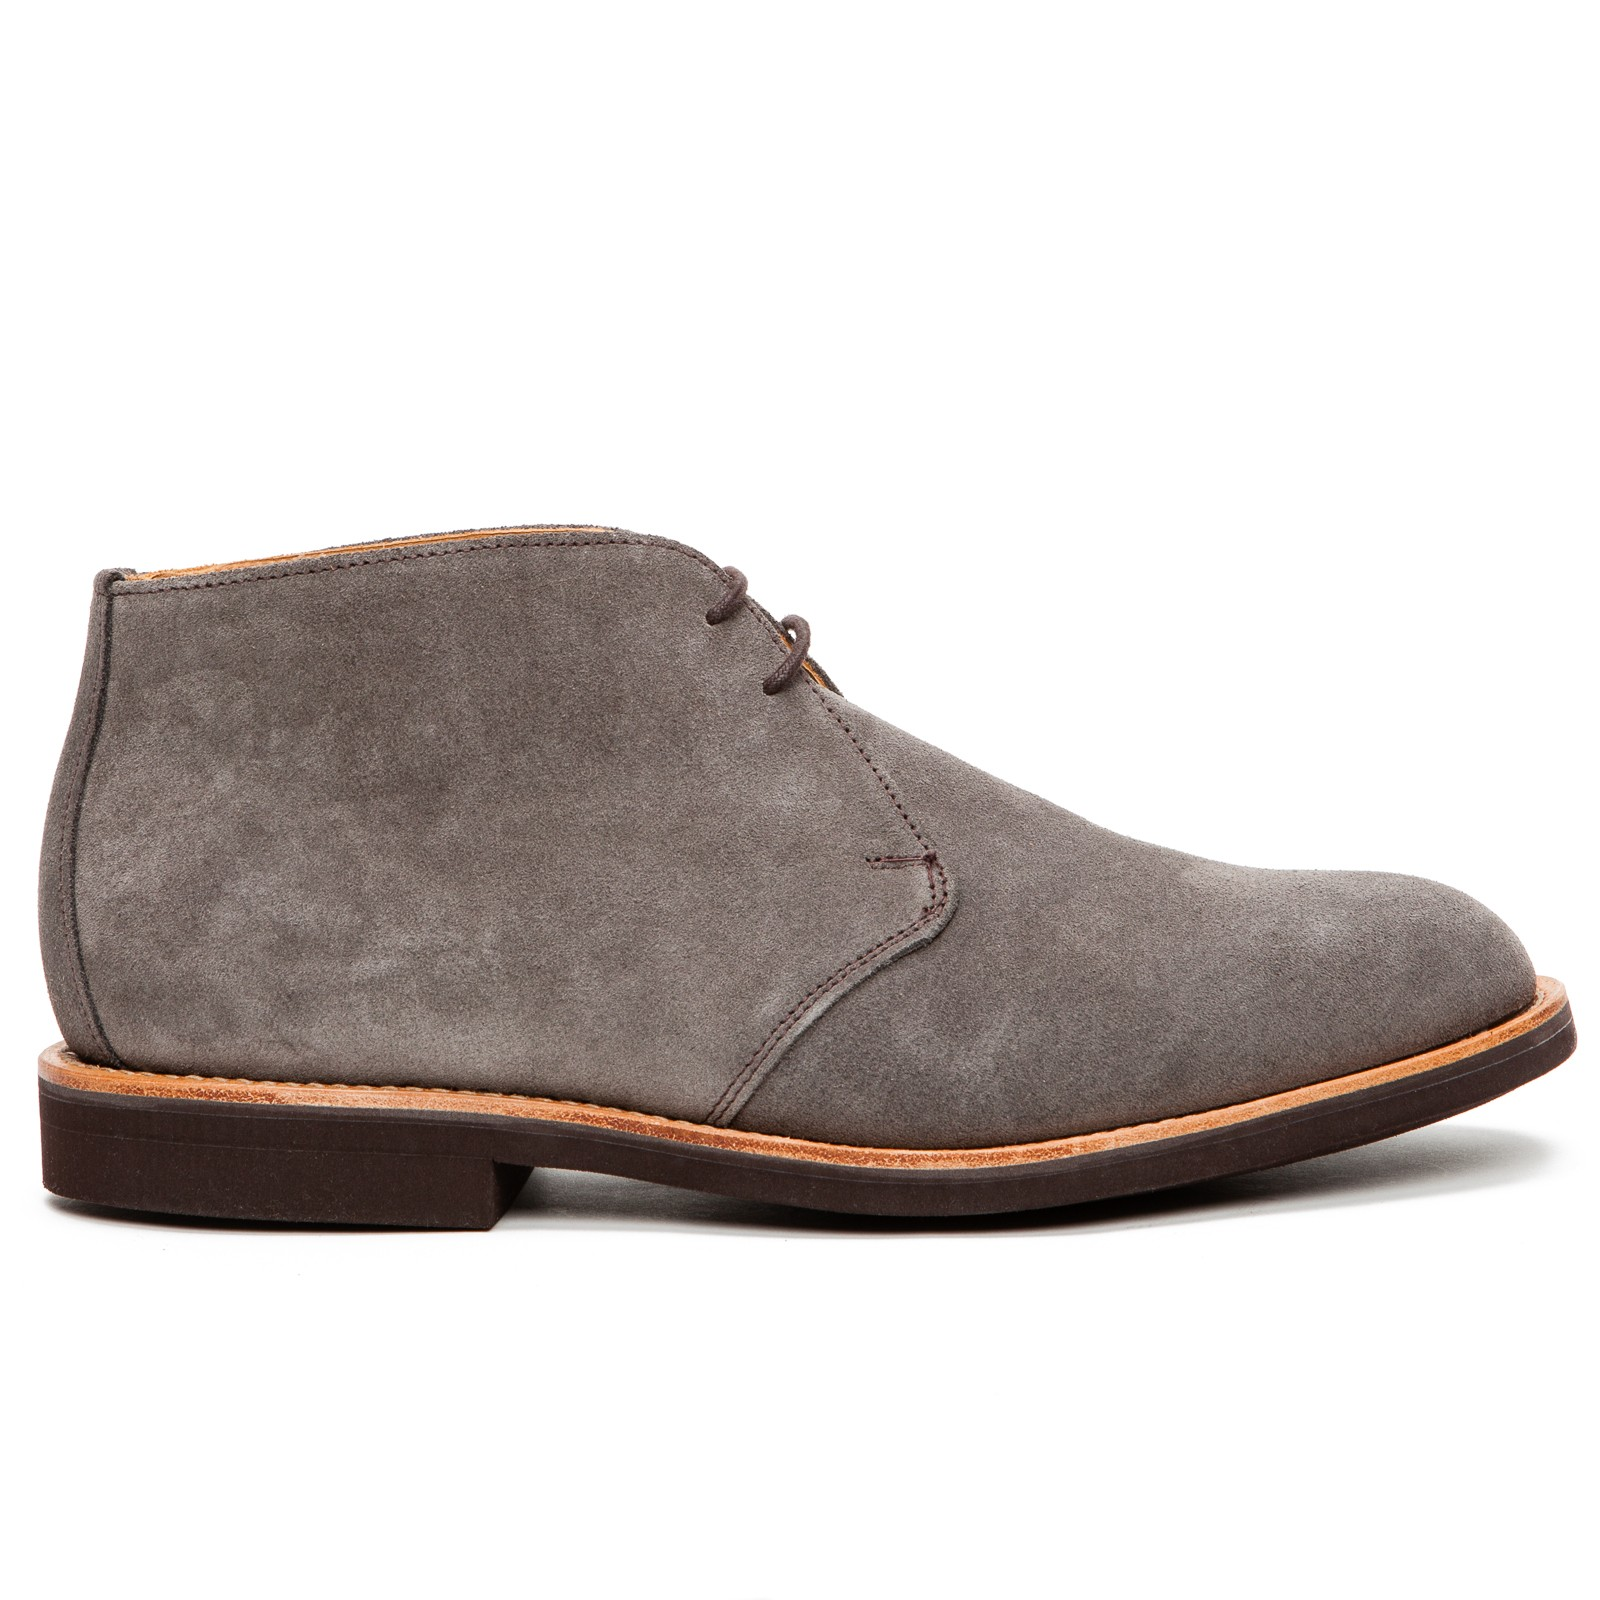 mcnairy suede desert boots in gray for grey lyst